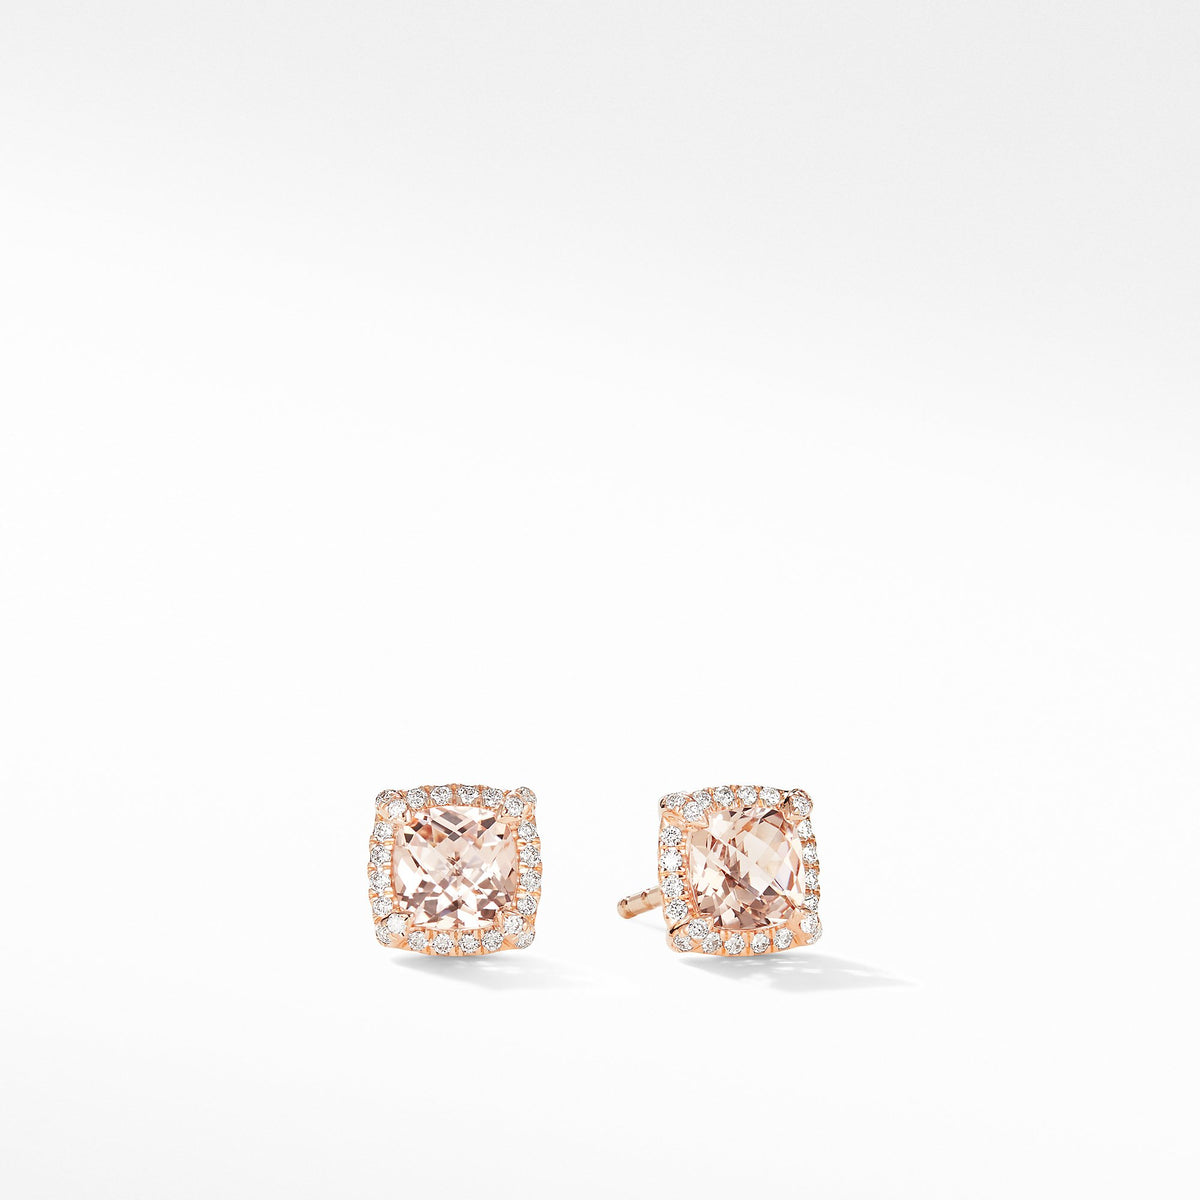 Petite Chatelaine Pave Bezel Stud Earrings in 18K Rose Gold with Morganite